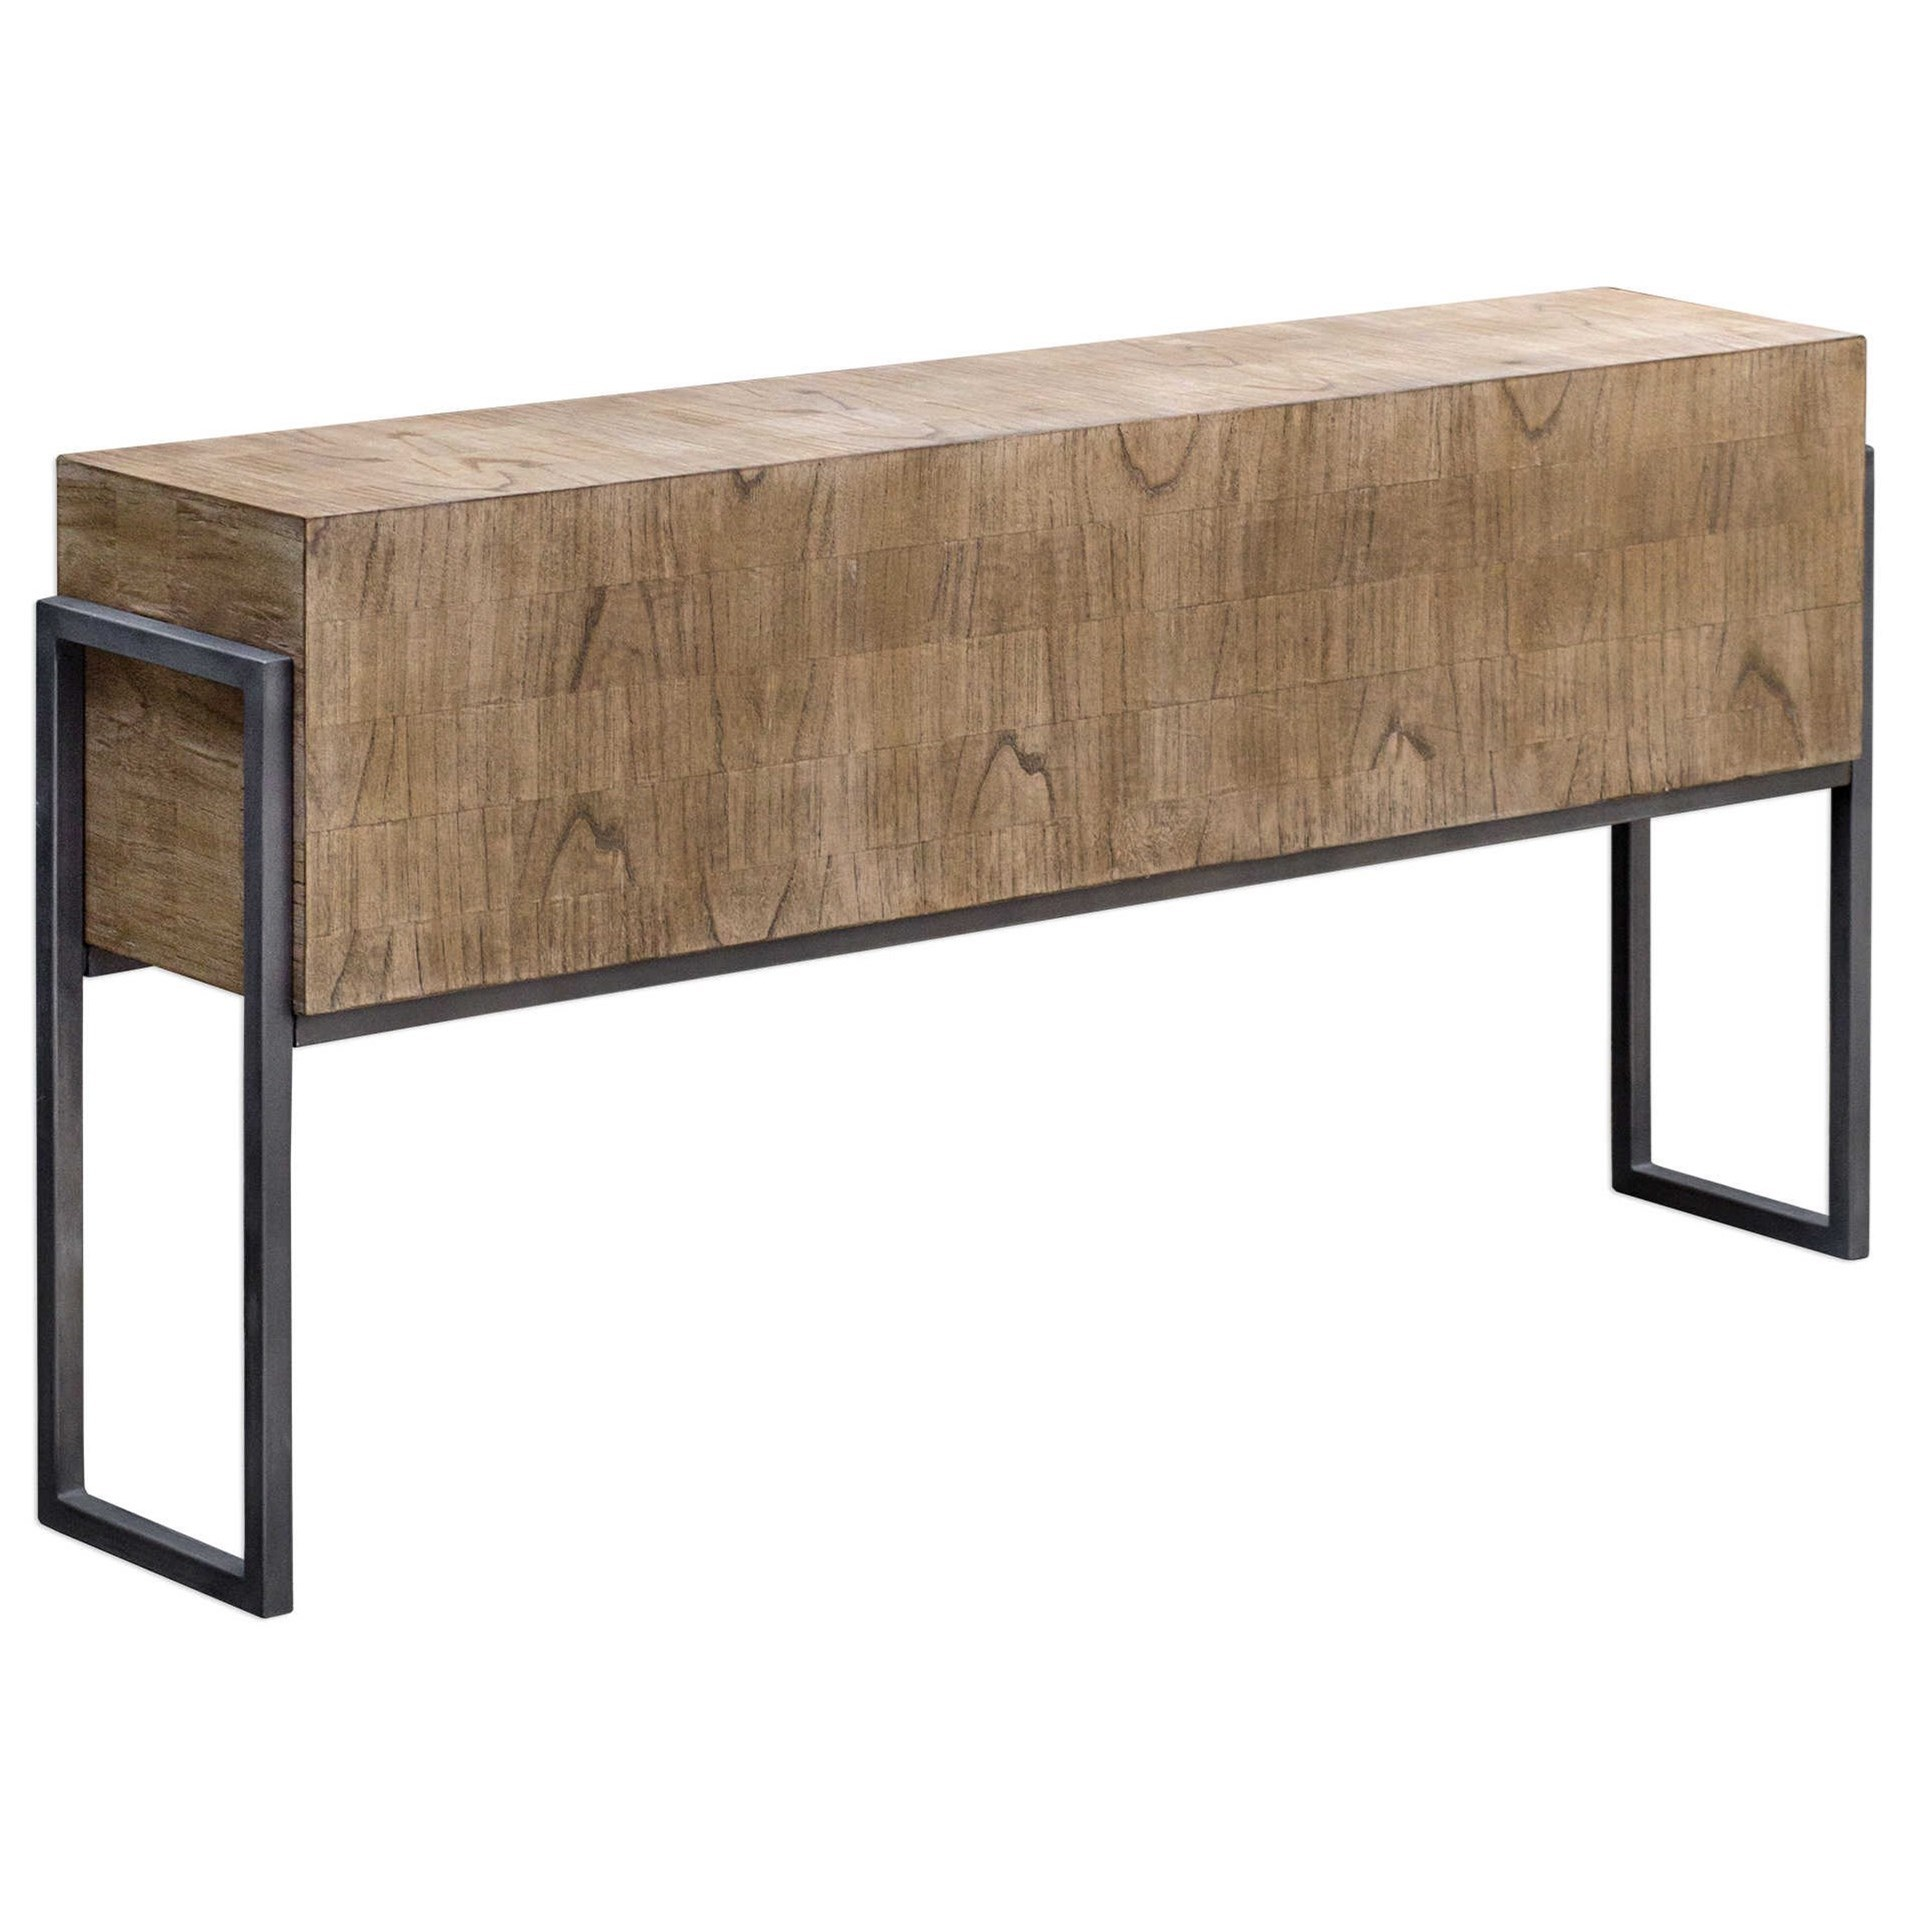 Accent Furniture - Occasional Tables Nevis Contemporary Sofa Table by Uttermost at Upper Room Home Furnishings